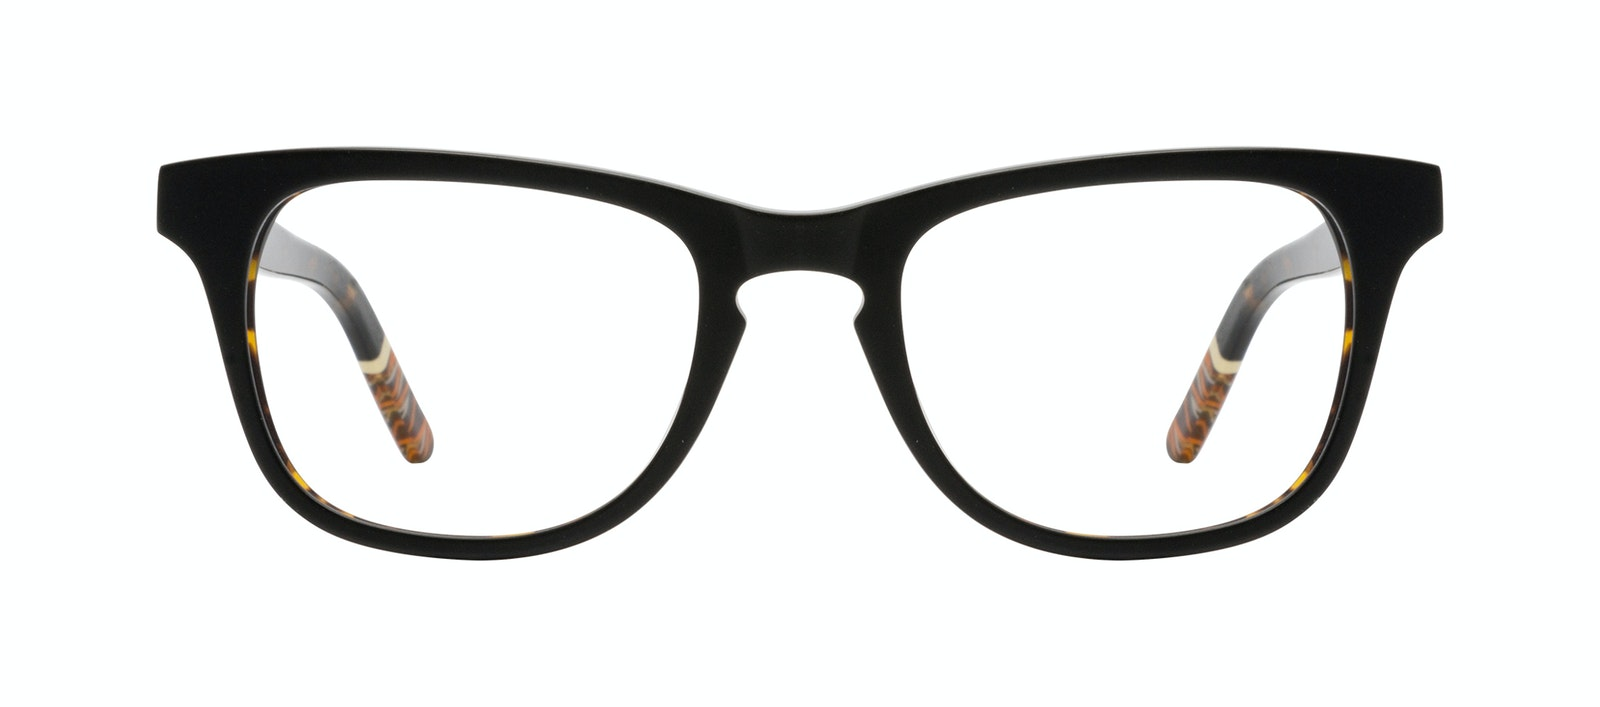 Affordable Fashion Glasses Rectangle Eyeglasses Men Trust Black Tort Front